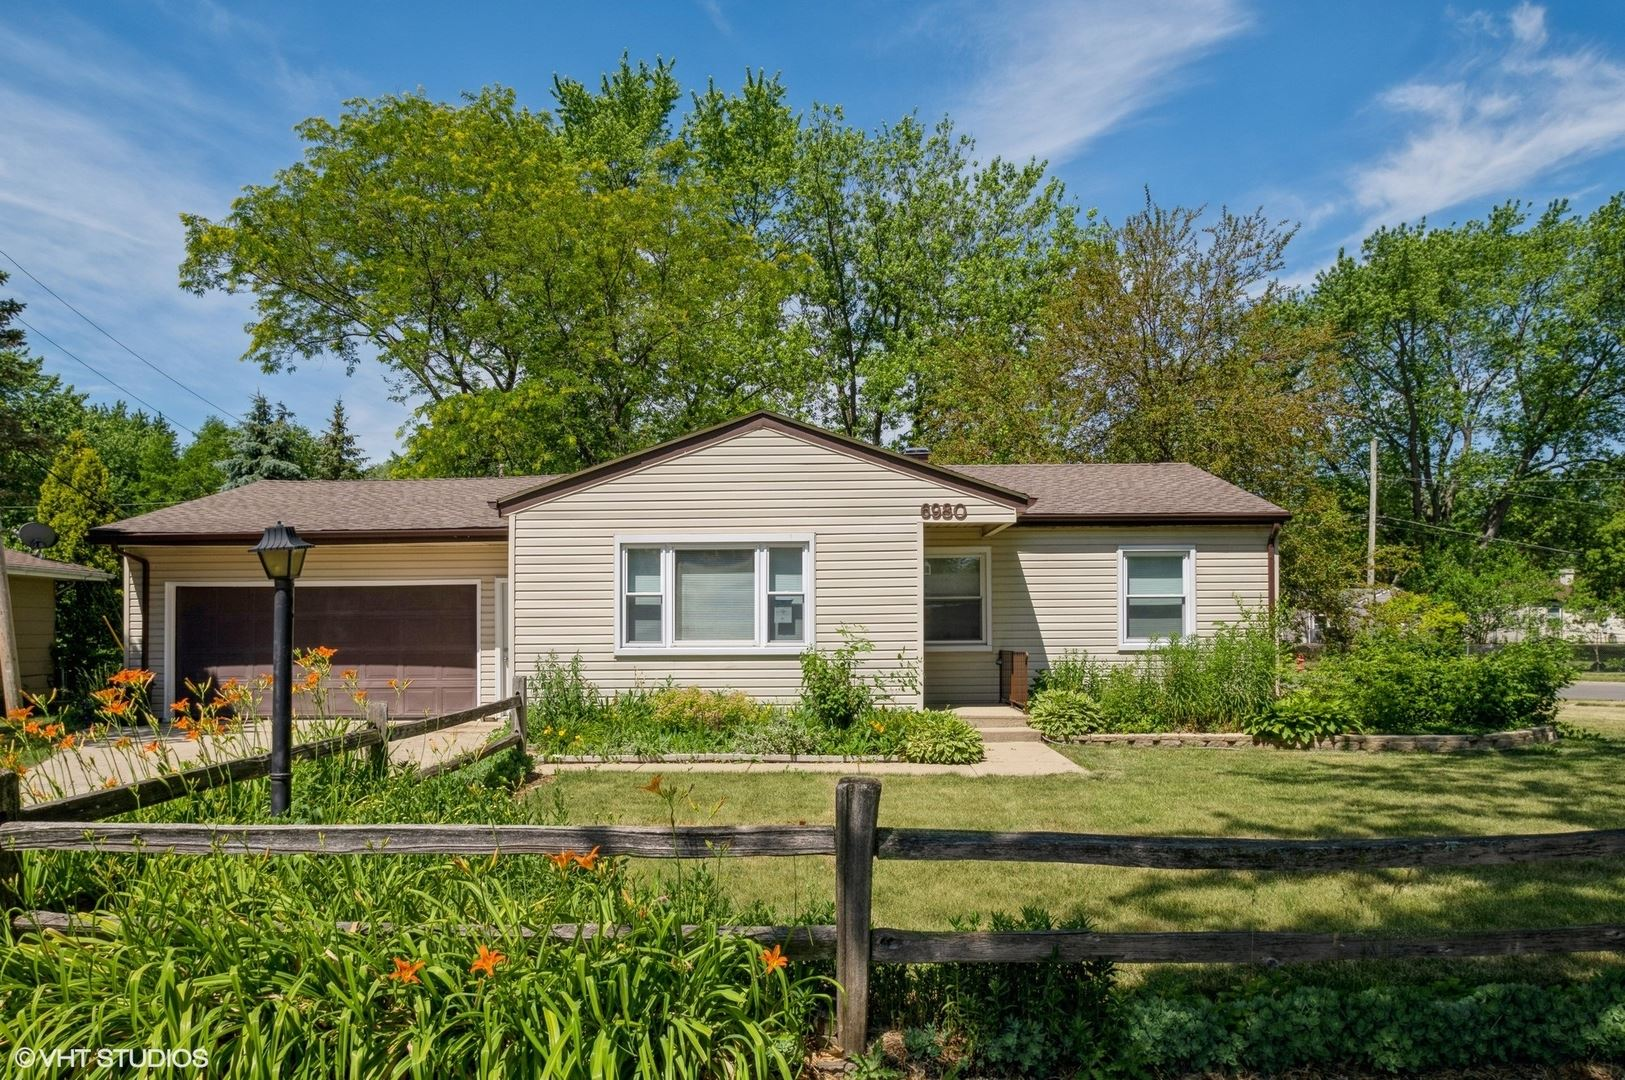 6980 Mulberry Street, Hanover Park, IL 60133 - #: 11128868